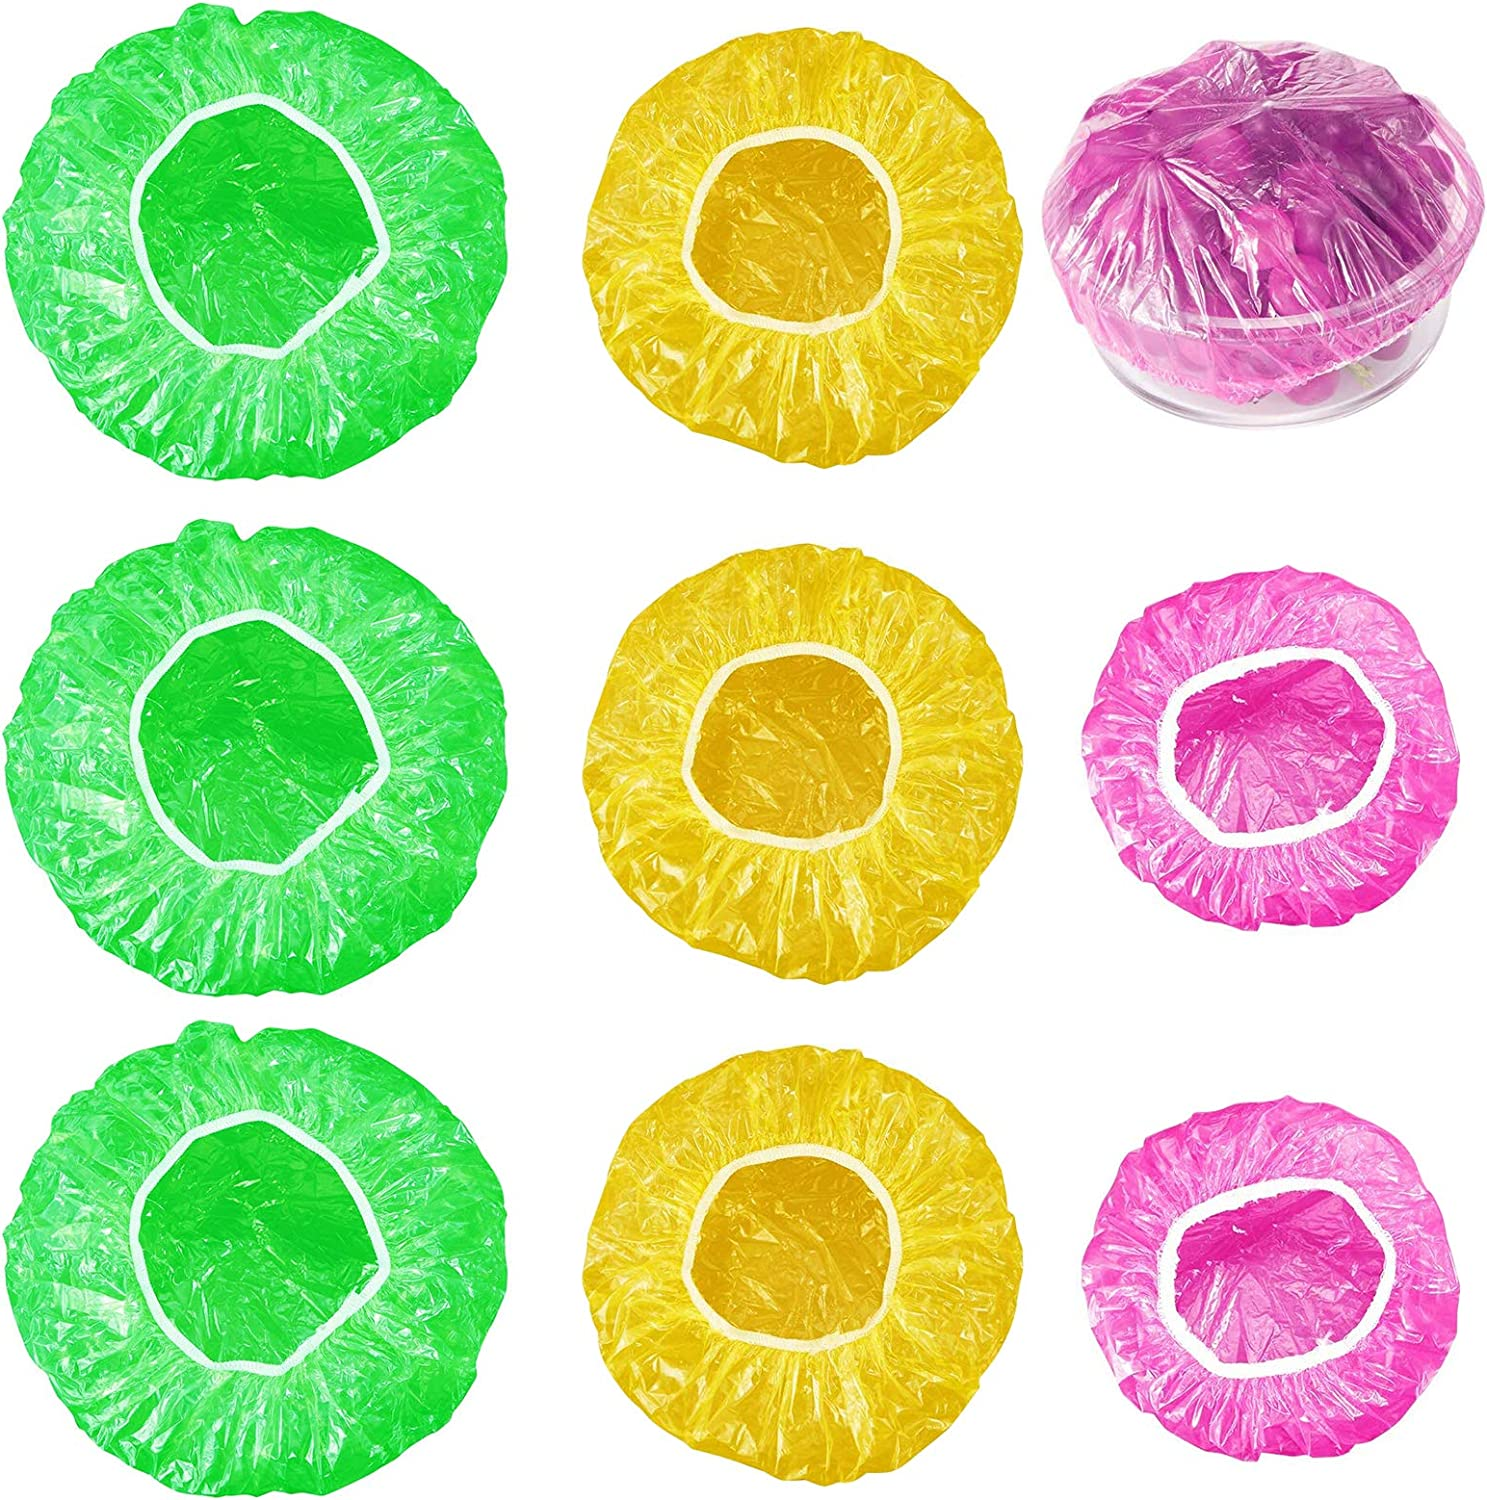 120 Pieces Reusable Food Storage Covers, Dish Plate Plastic Covers for Family Outdoor Picnic, Elastic Colorful Bowl Dish Plate Plastic Covers